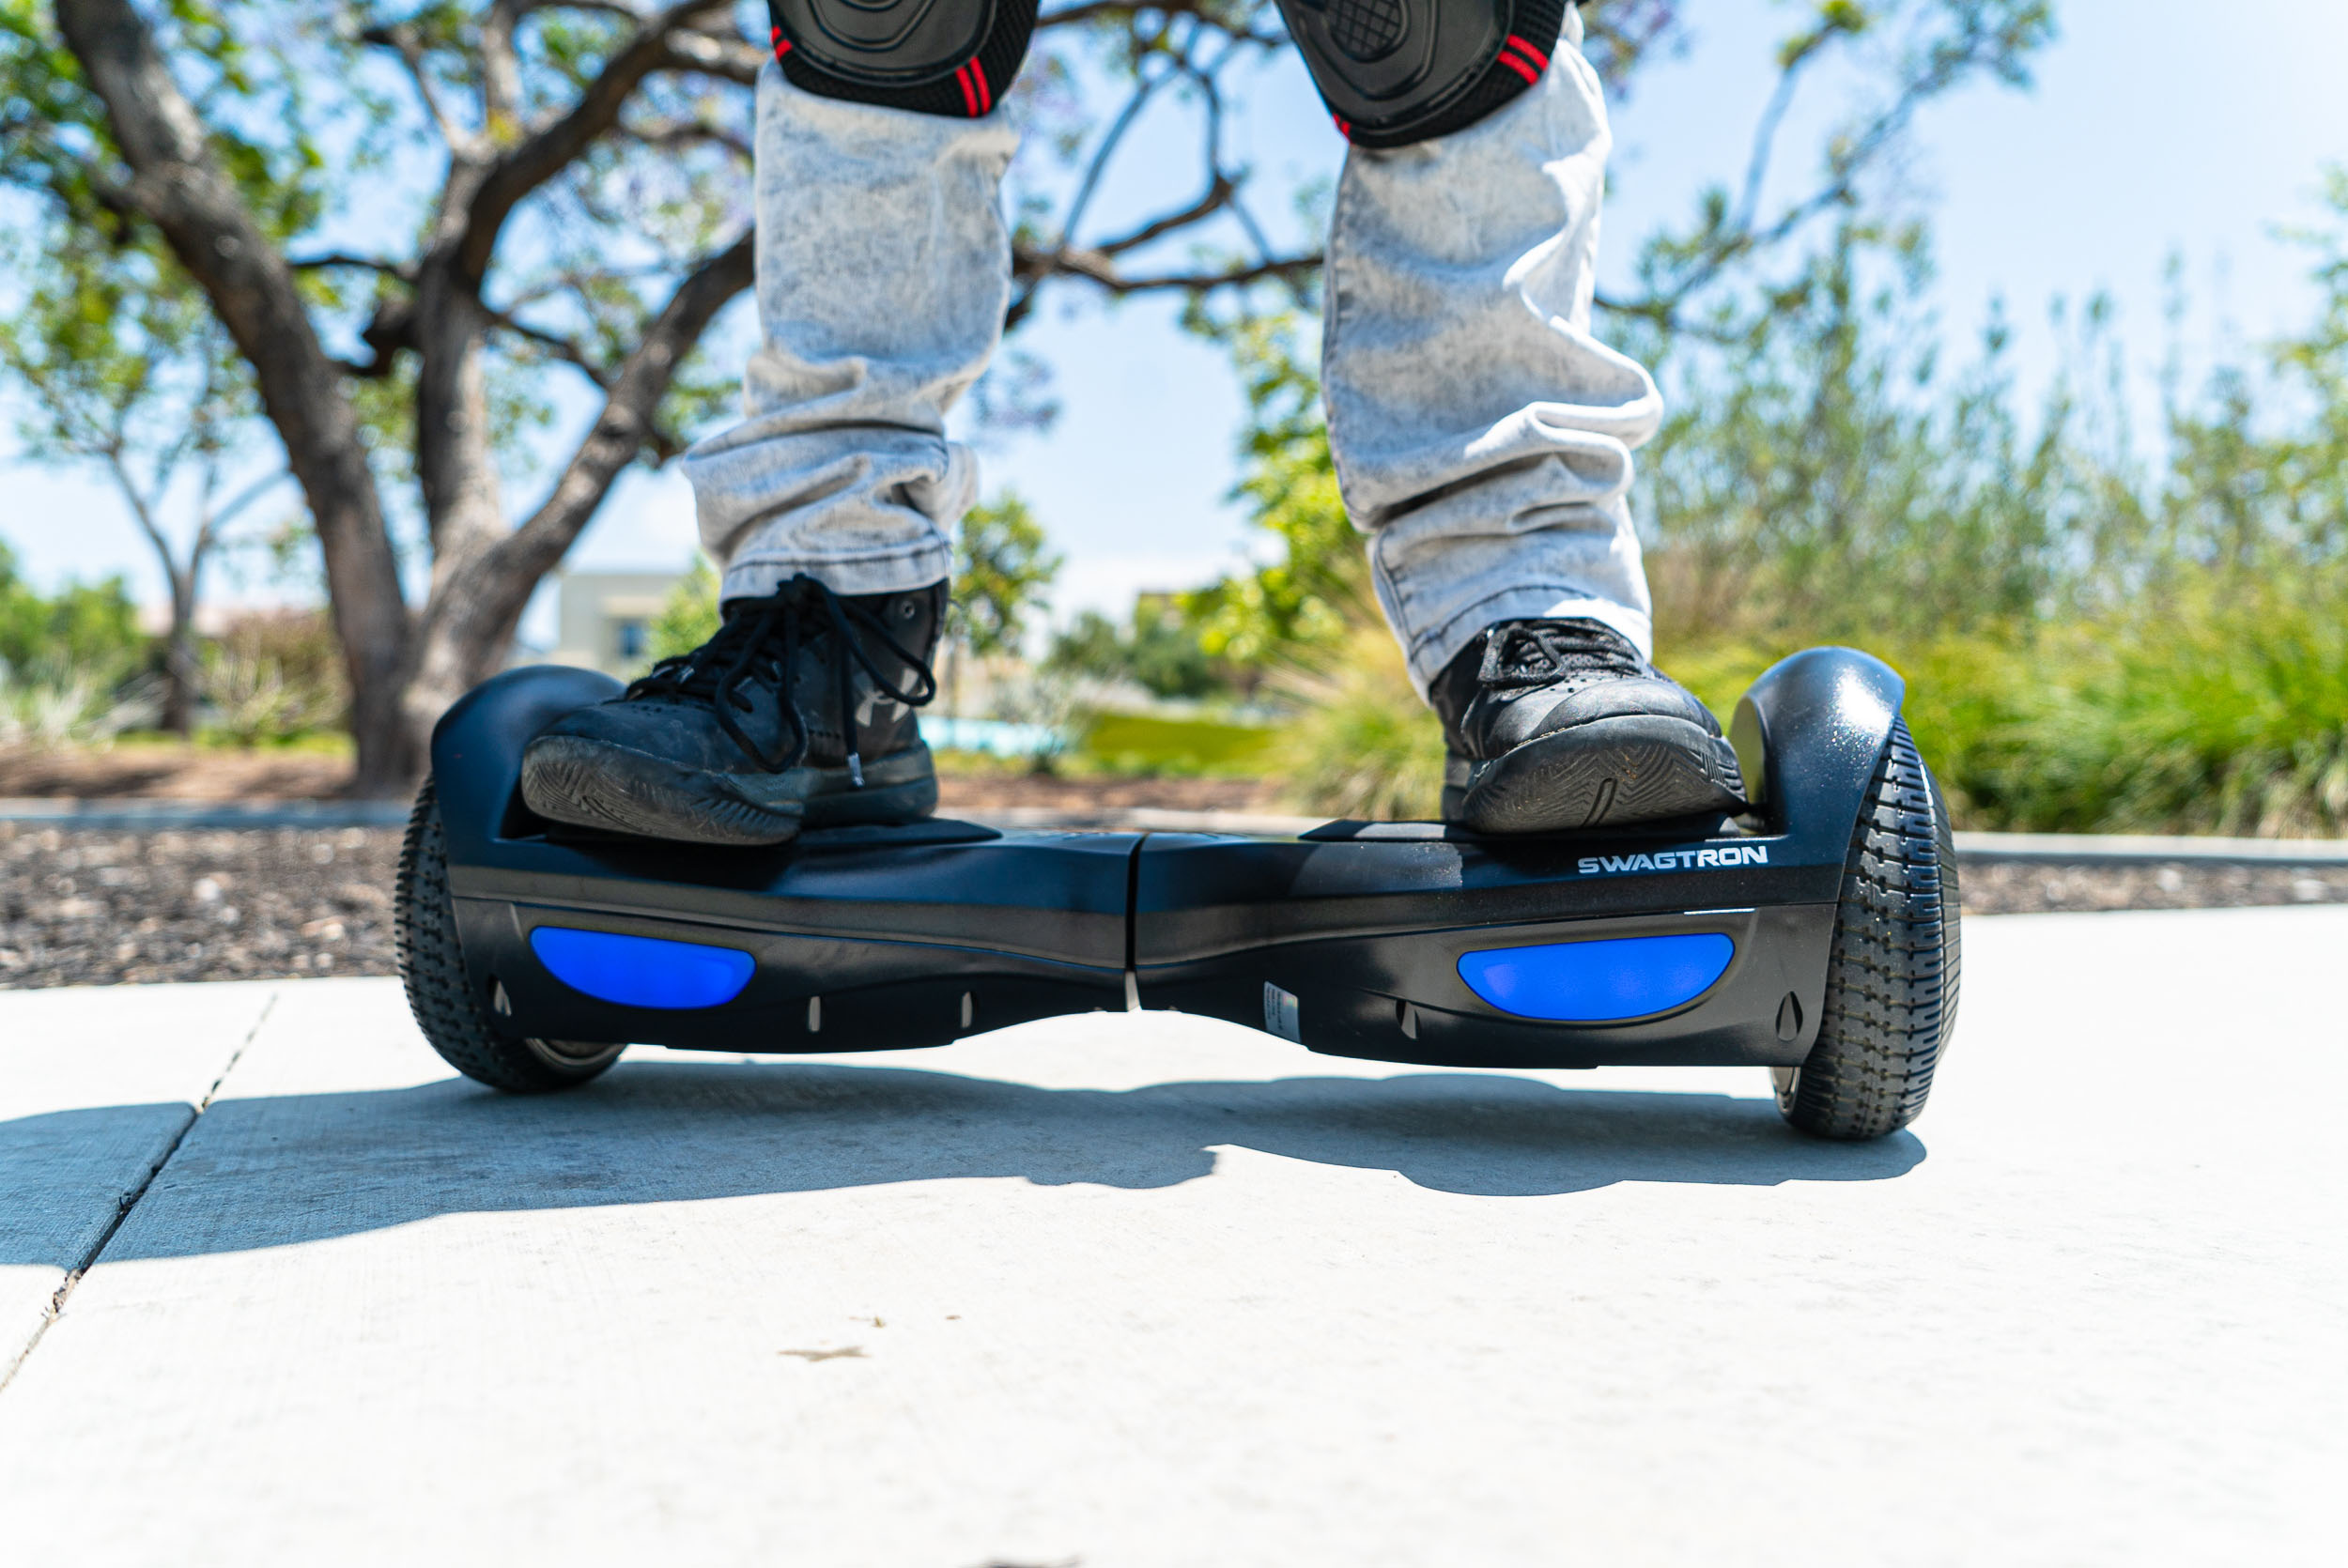 Hoverboard for kids - Swagboard Twist Essential